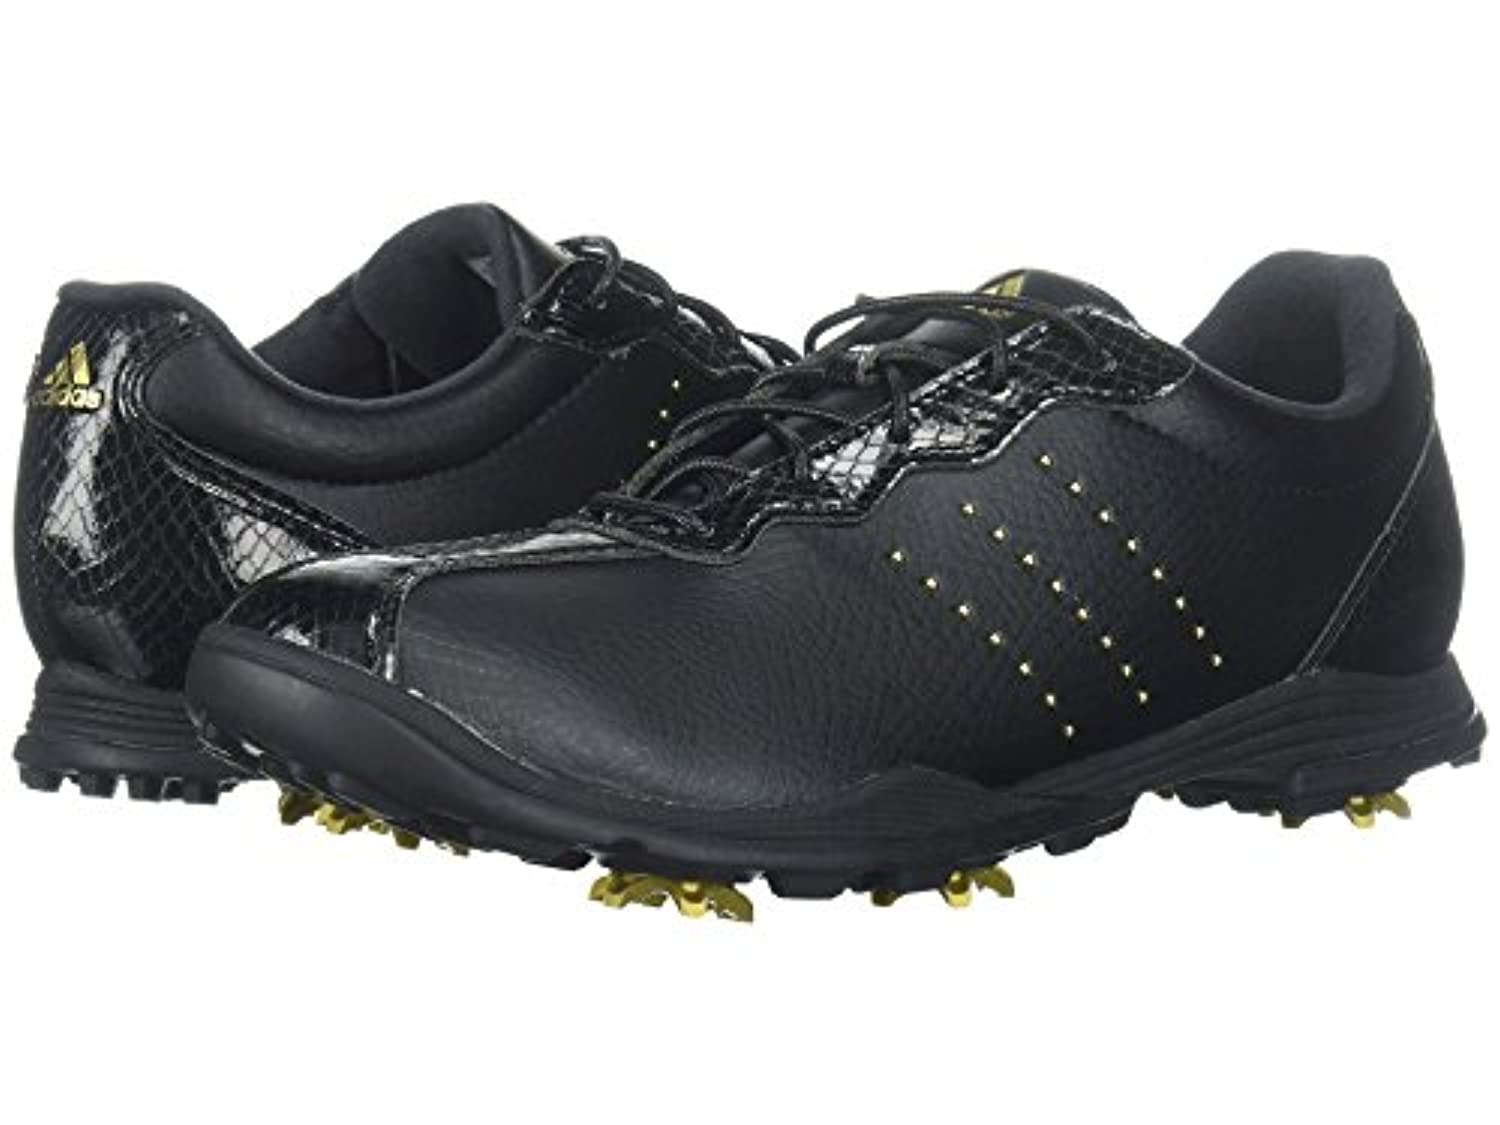 (アディダス) adidas レディースゴルフシューズ?靴 Adipure DC Core Black/Gold Metallic/Core Black 7.5 (24.5cm) M